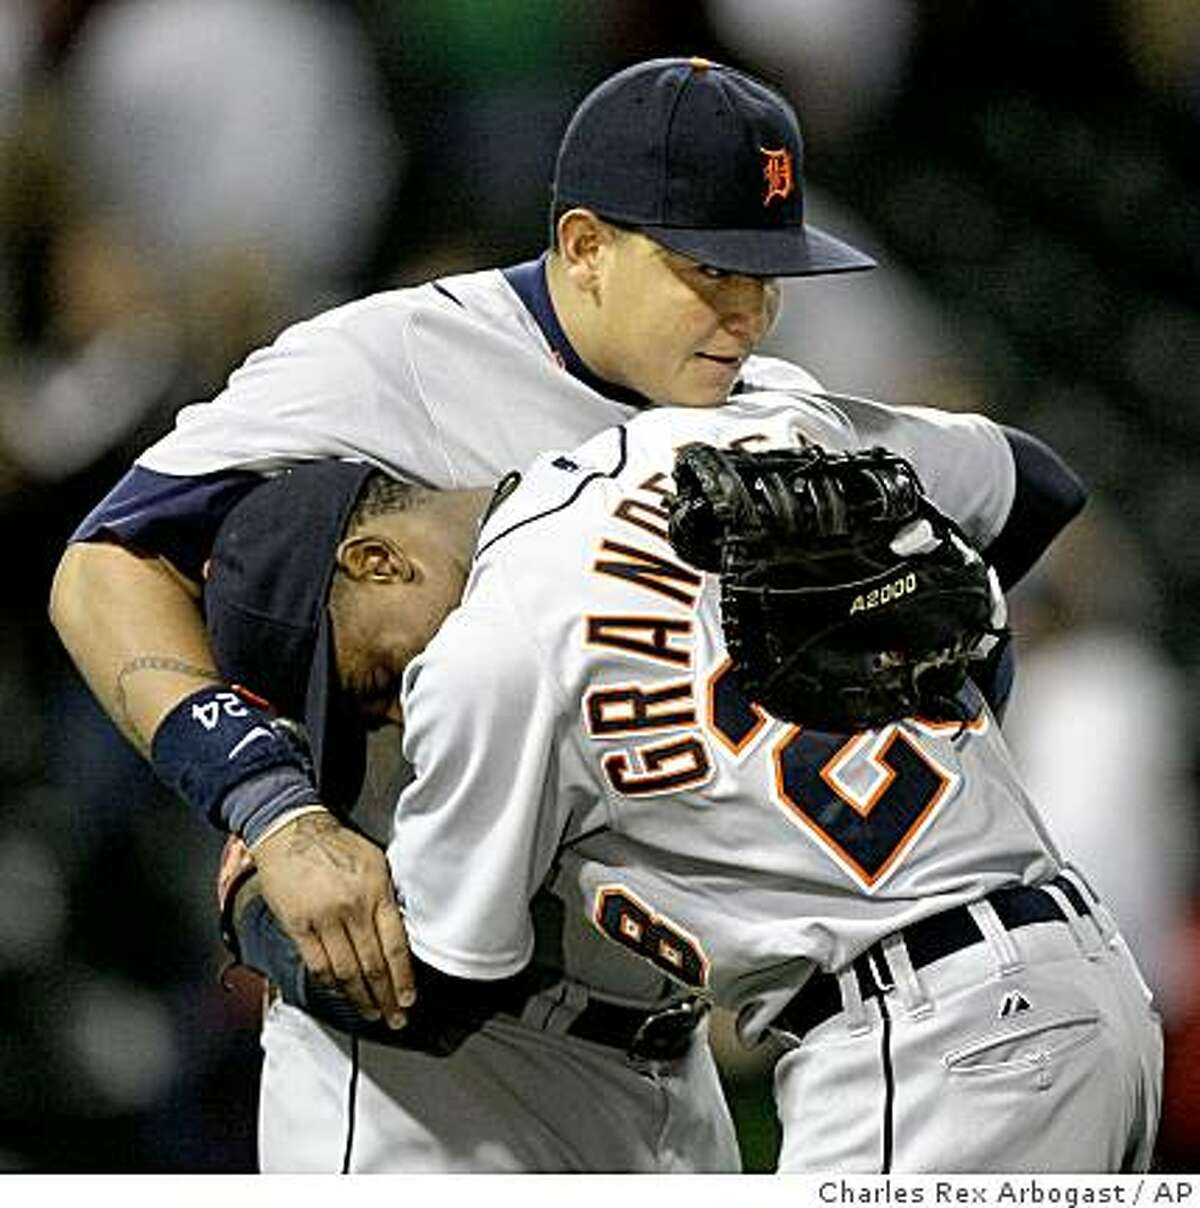 Detroit Tigers' Miguel Cabrera is hugged by Curtis Granderson after the Tigers defeated the Chicago White Sox 7-6 in 10 innings Tuesday, June 9, 2009, in Chicago. Cabrera hit a home run in the 10th inning. (AP Photo/Charles Rex Arbogast)